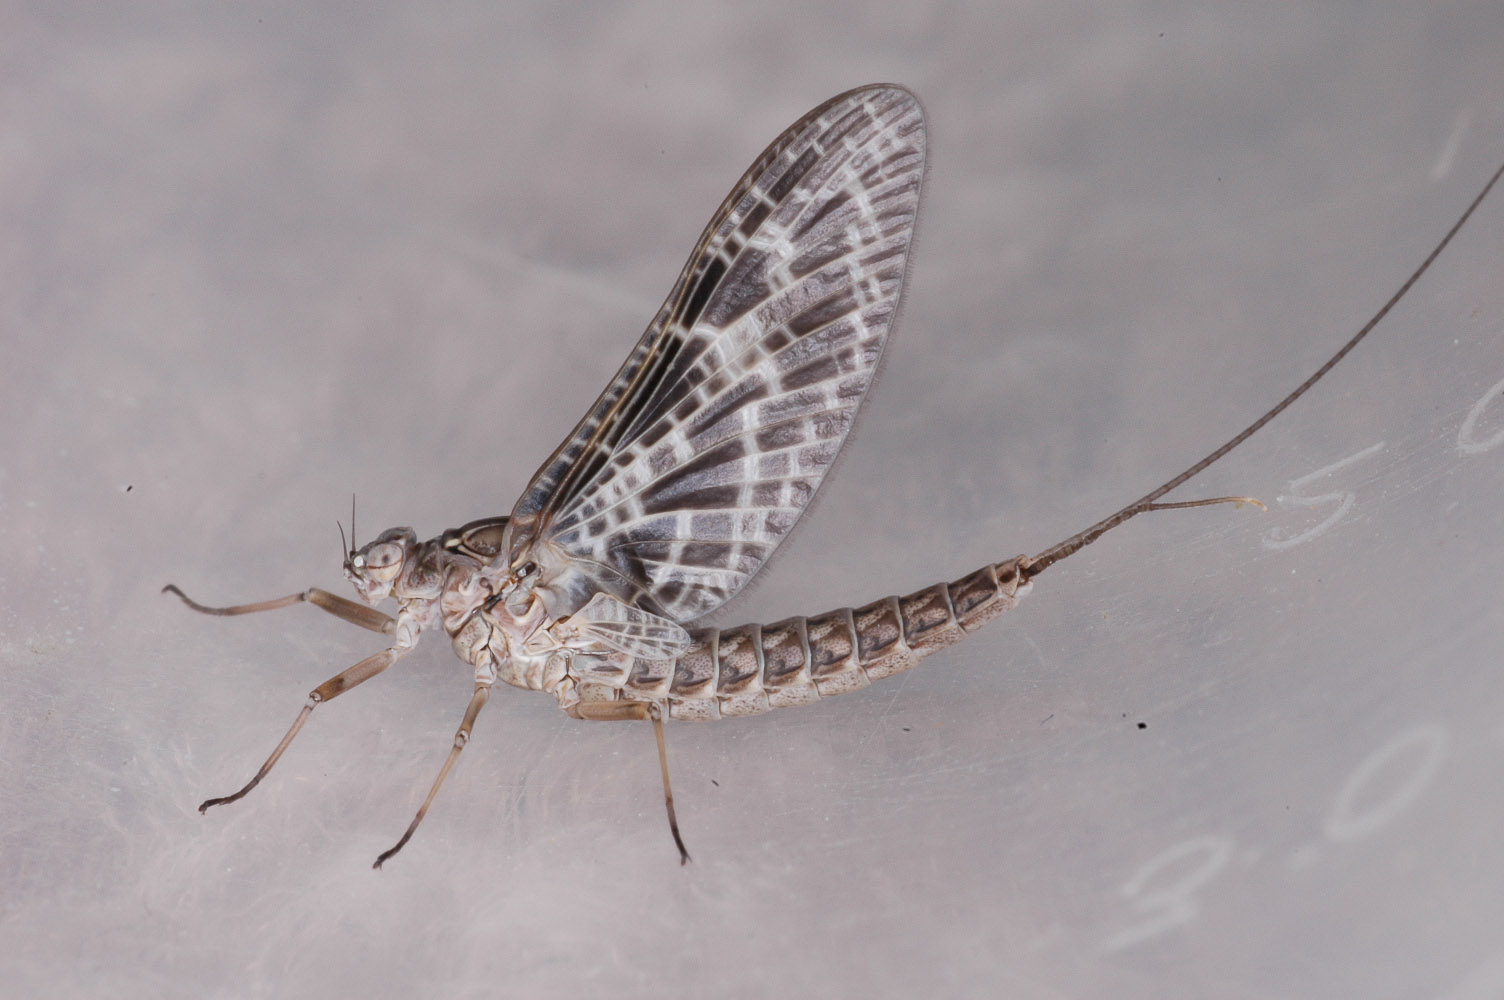 Female Callibaetis (Speckled Spinners) Mayfly Dun from Flathead Lake in Montana